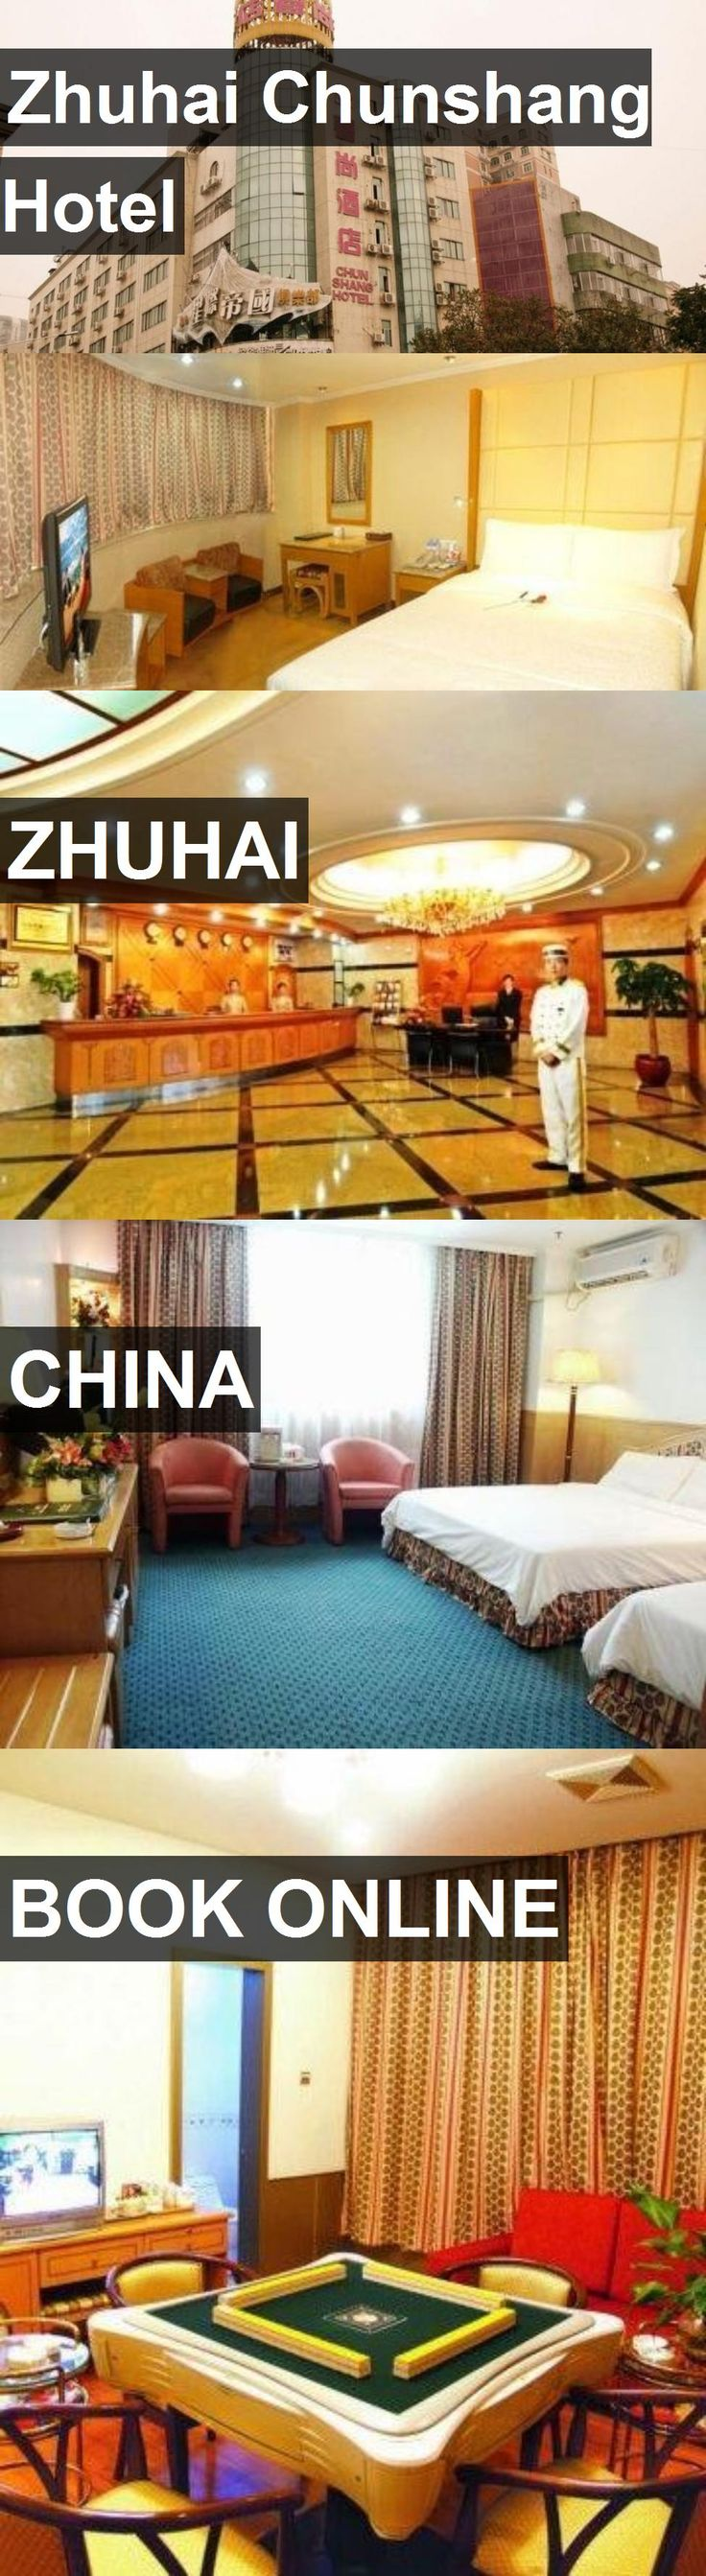 Zhuhai Chunshang Hotel in Zhuhai, China. For more information, photos, reviews and best prices please follow the link. #China #Zhuhai #travel #vacation #hotel